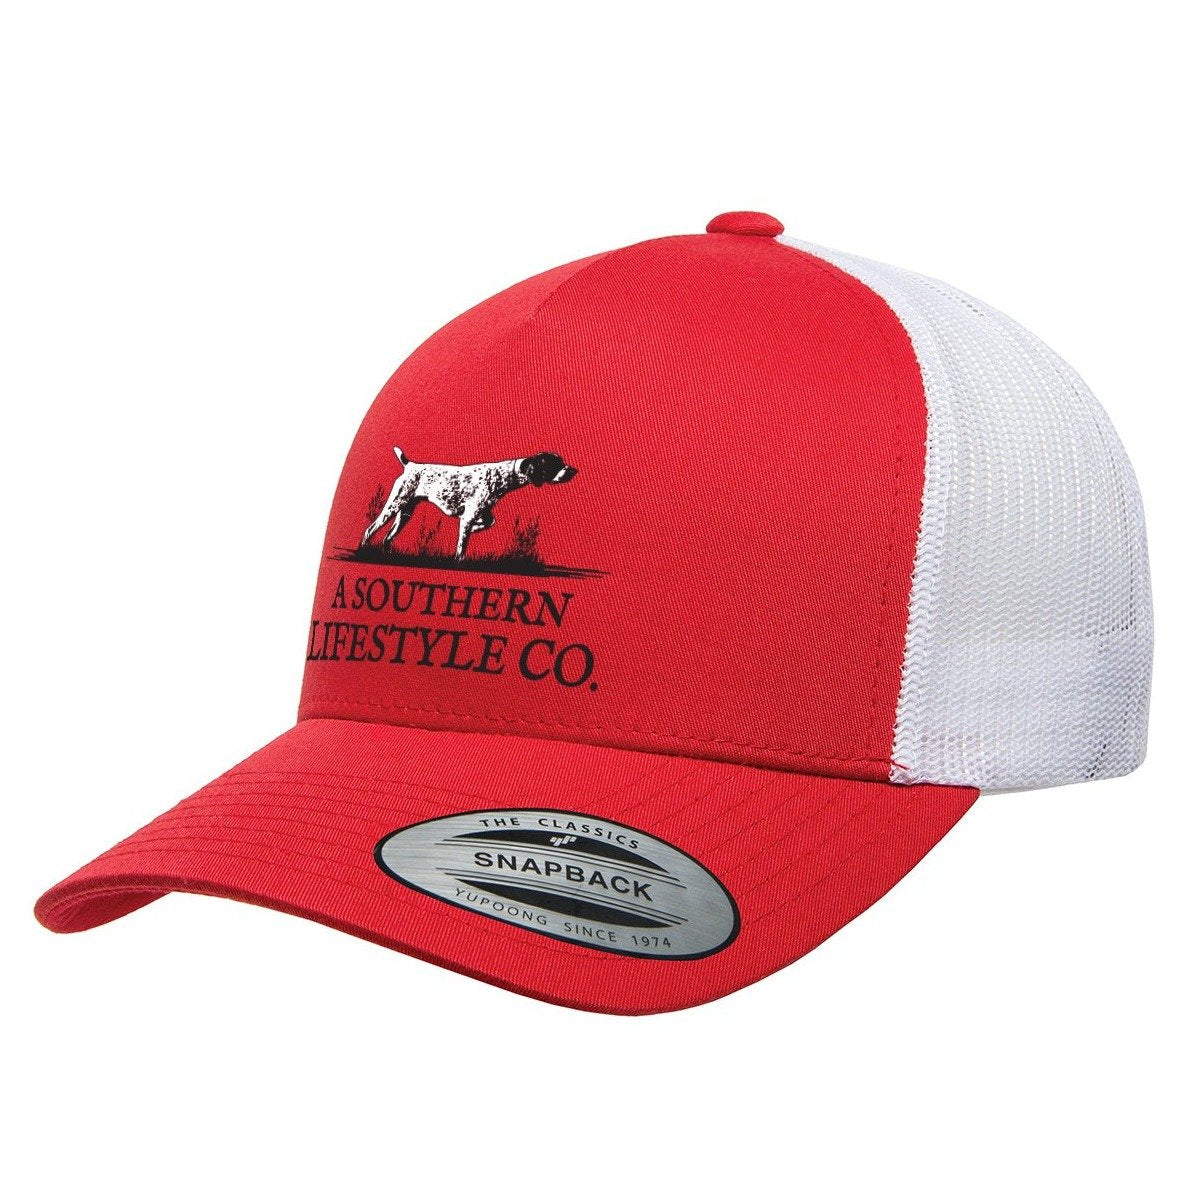 ON-POINT RETRO HAT